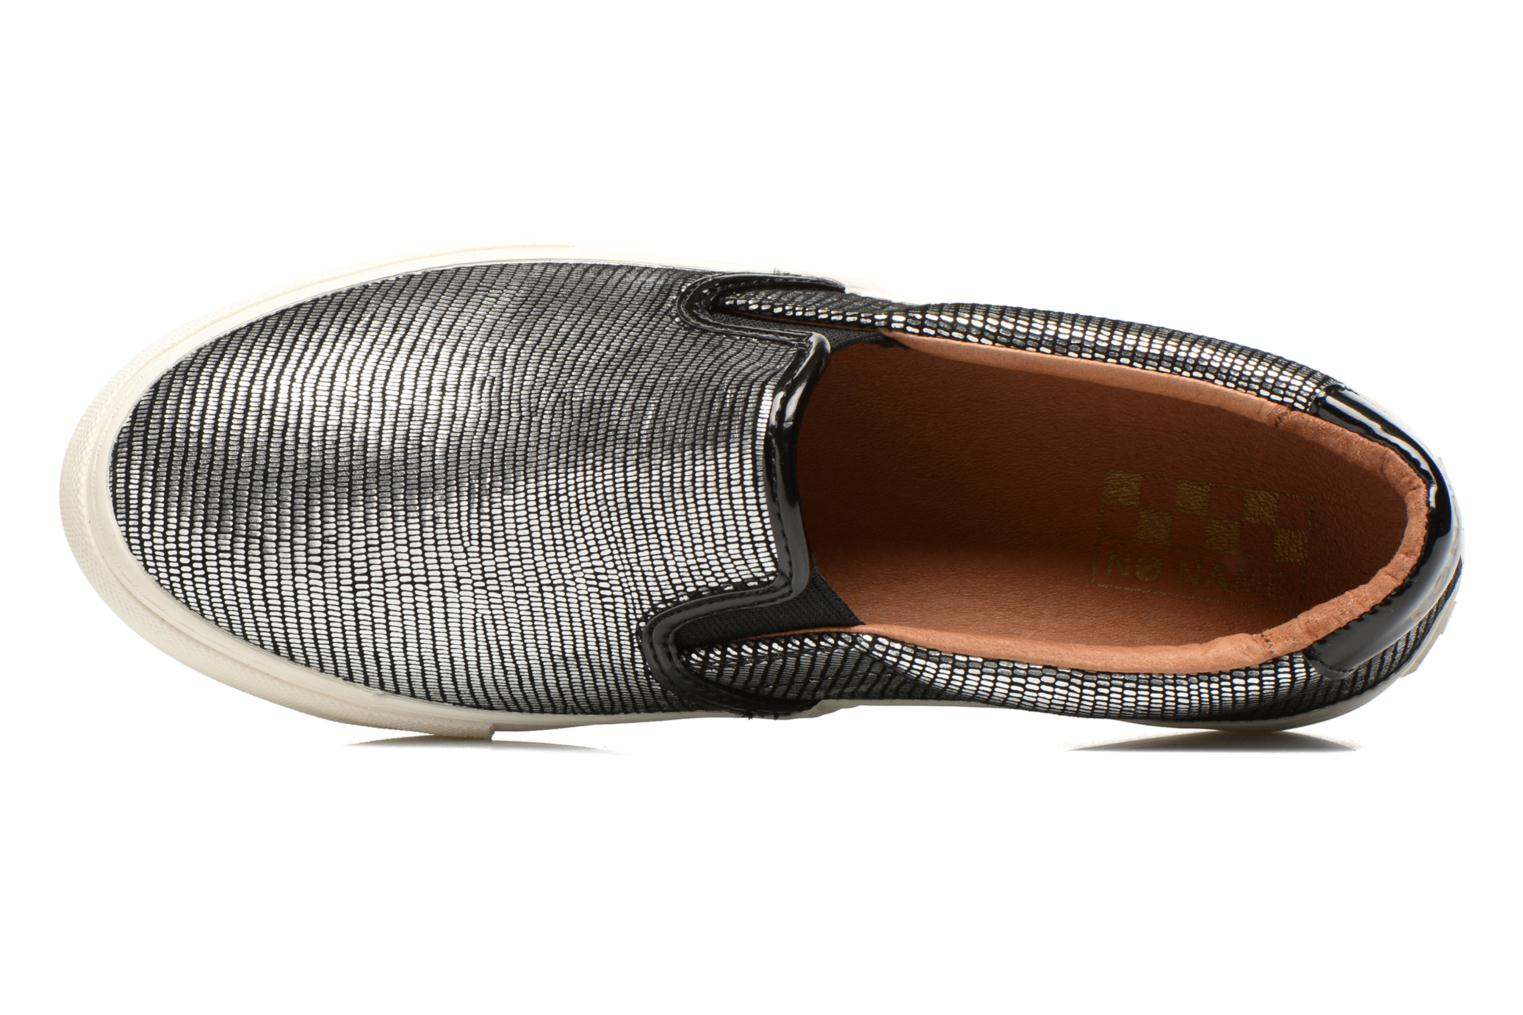 Arcade Slip On Wizz Silver Fox Dove